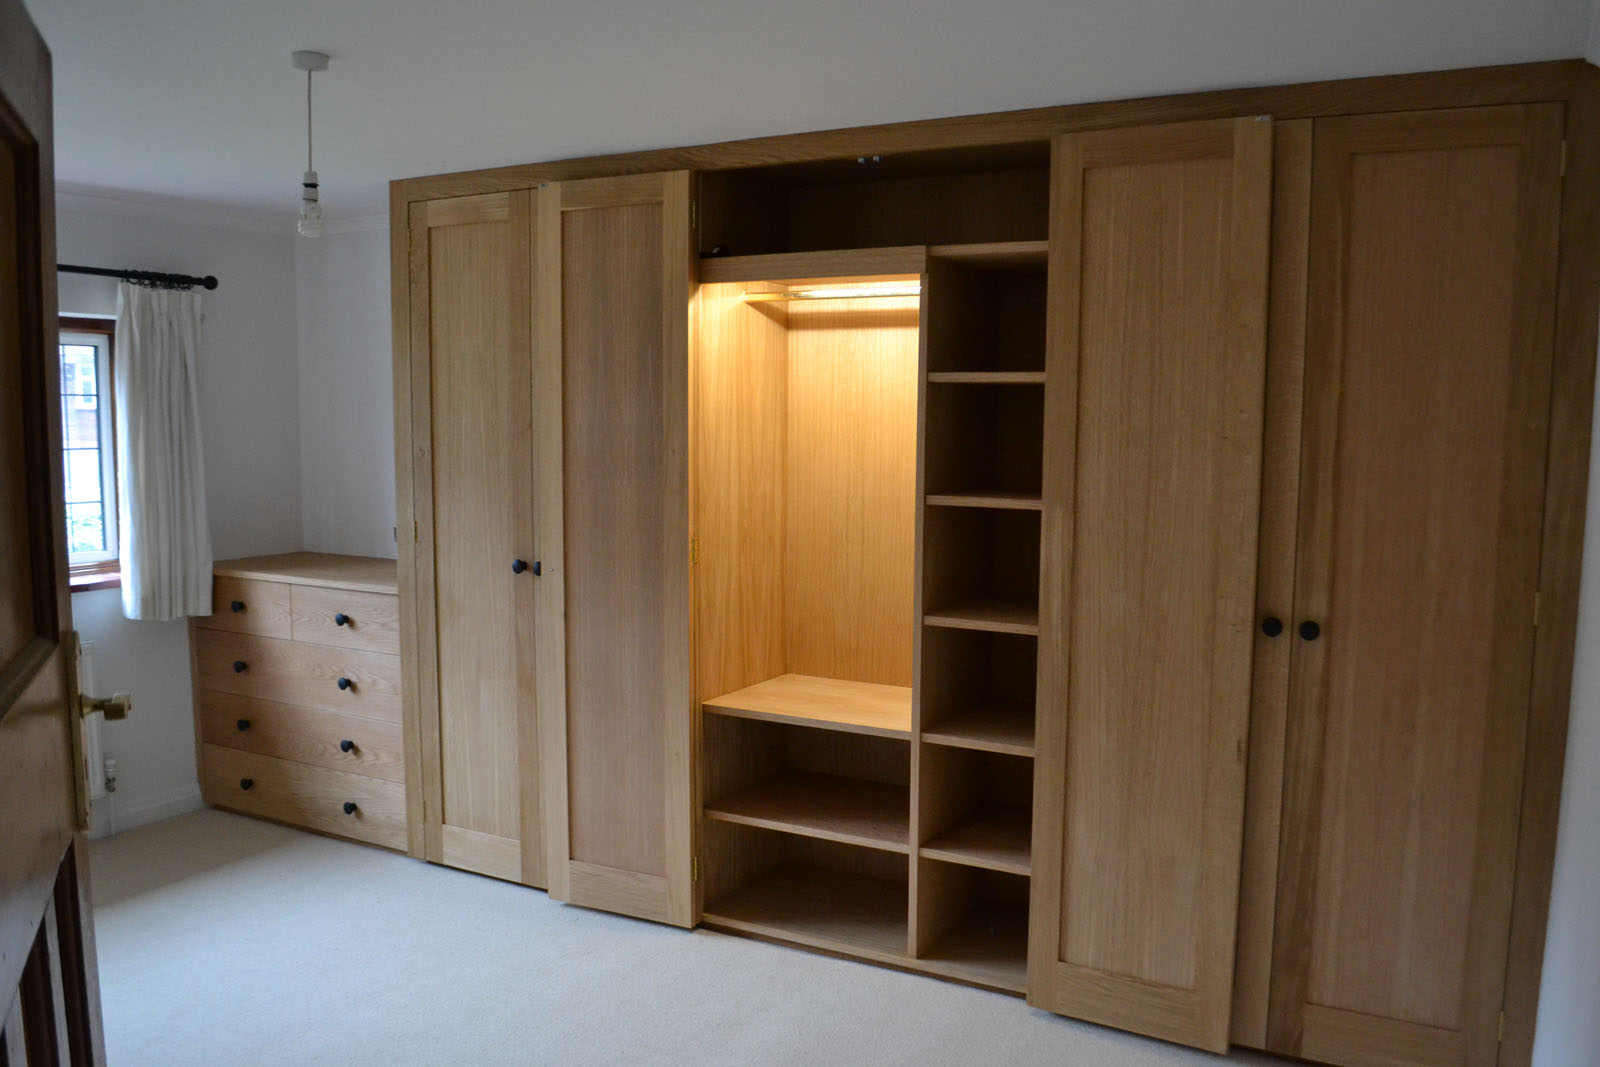 Bespoke built-In wardrobes